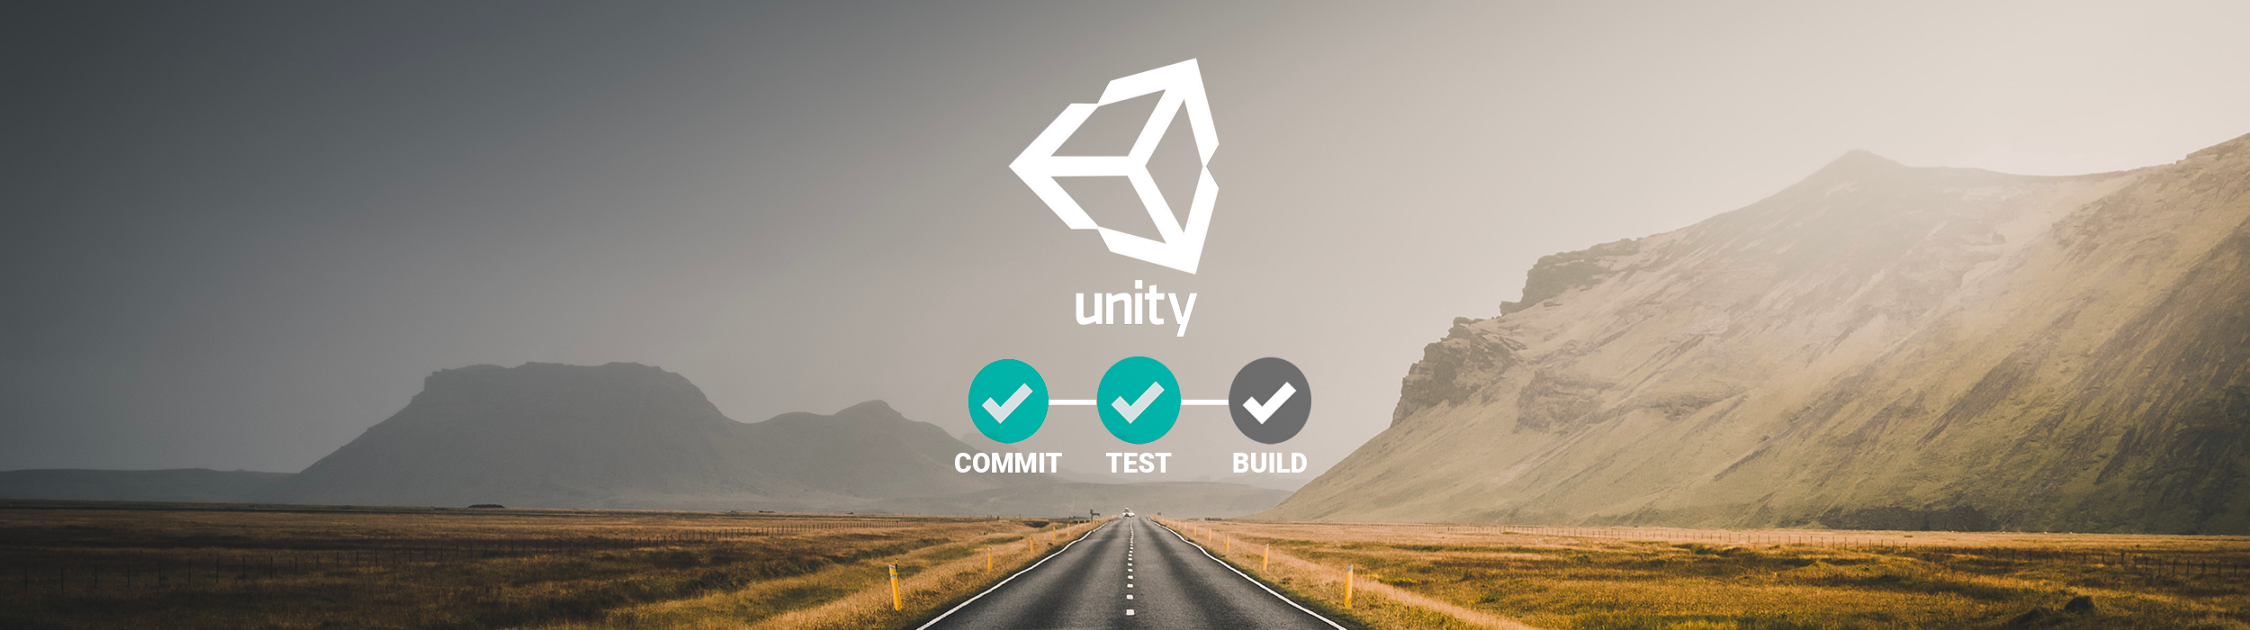 The Road to Continuous Integration in Unity - DZone DevOps